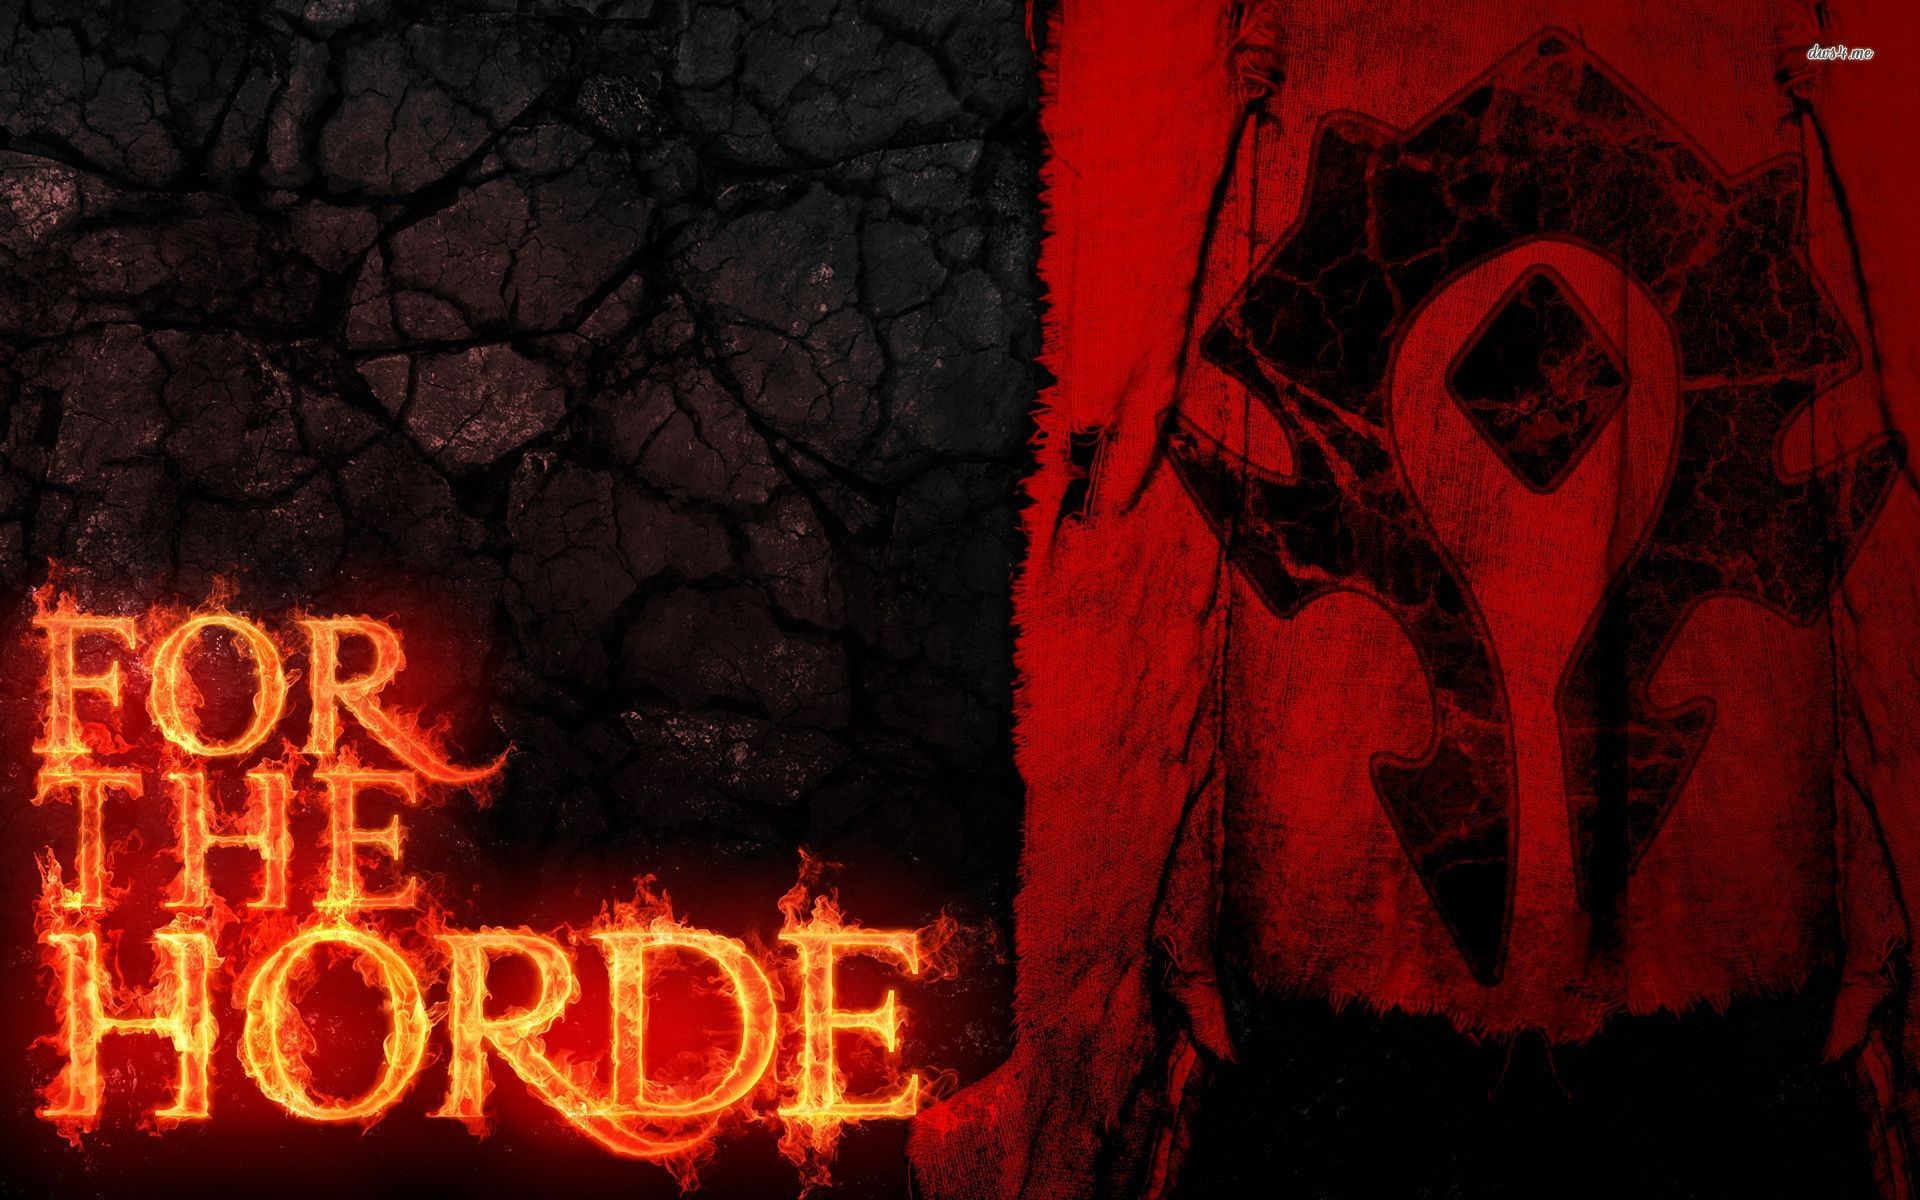 1920x1200 Horde Logo Wallpapers Wallpaper | HD Wallpapers | Pinterest | Horde,  Wallpaper and Warcraft movie